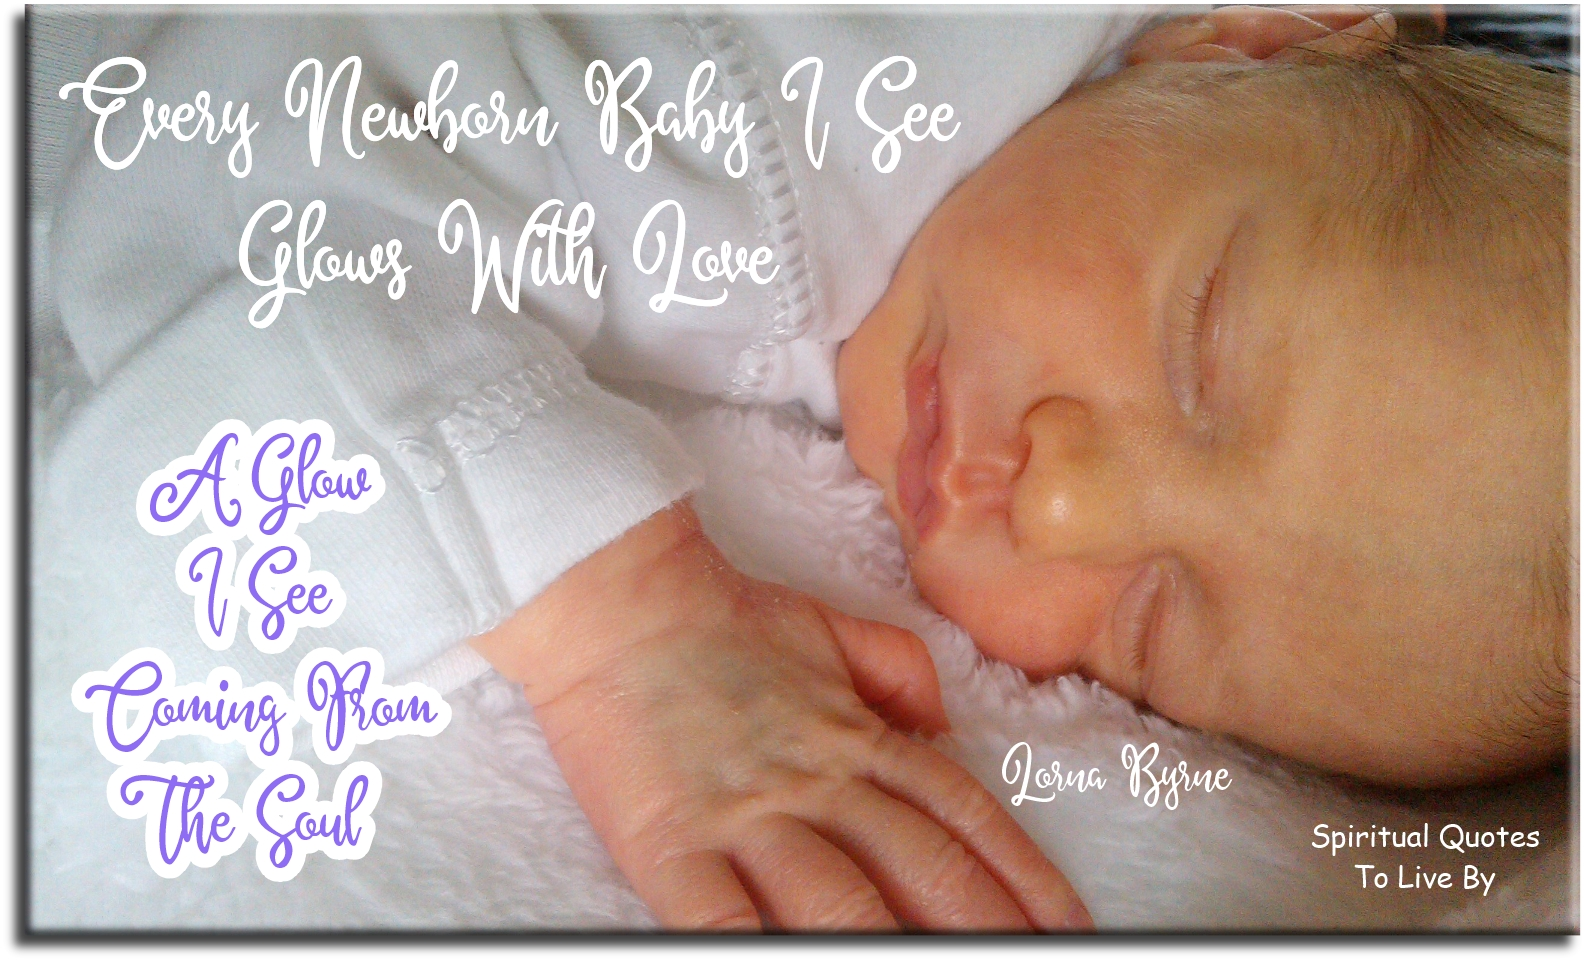 Lorna Byrne quote: Every newborn baby I see glows with love, a glow I see coming from the Soul. - Spiritual Quotes To Live By